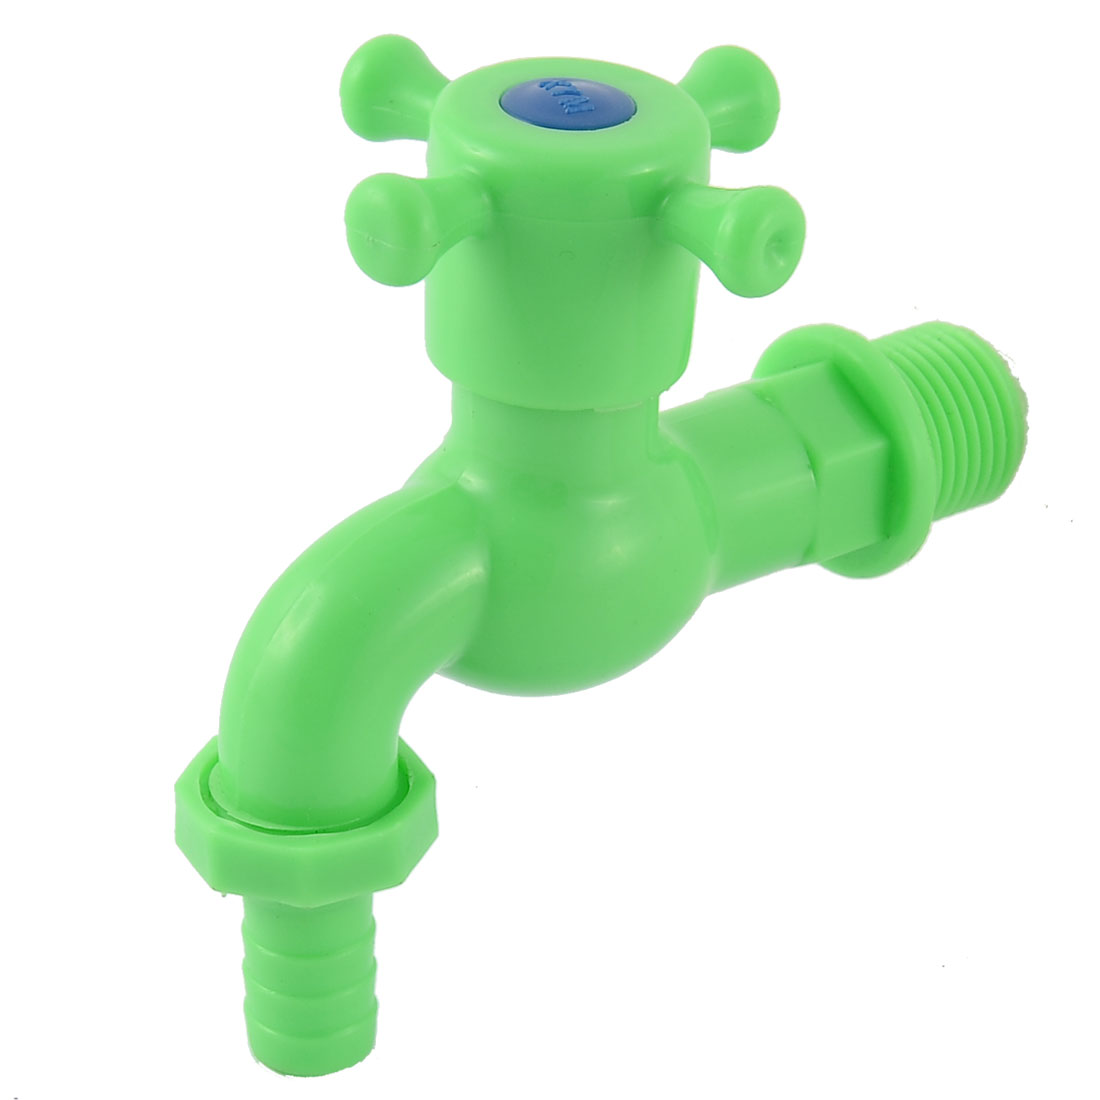 Kitchen Basin Sink 1/2 BSP Male Thread Dia Plastic Turn Handle Water Tap Faucet Green